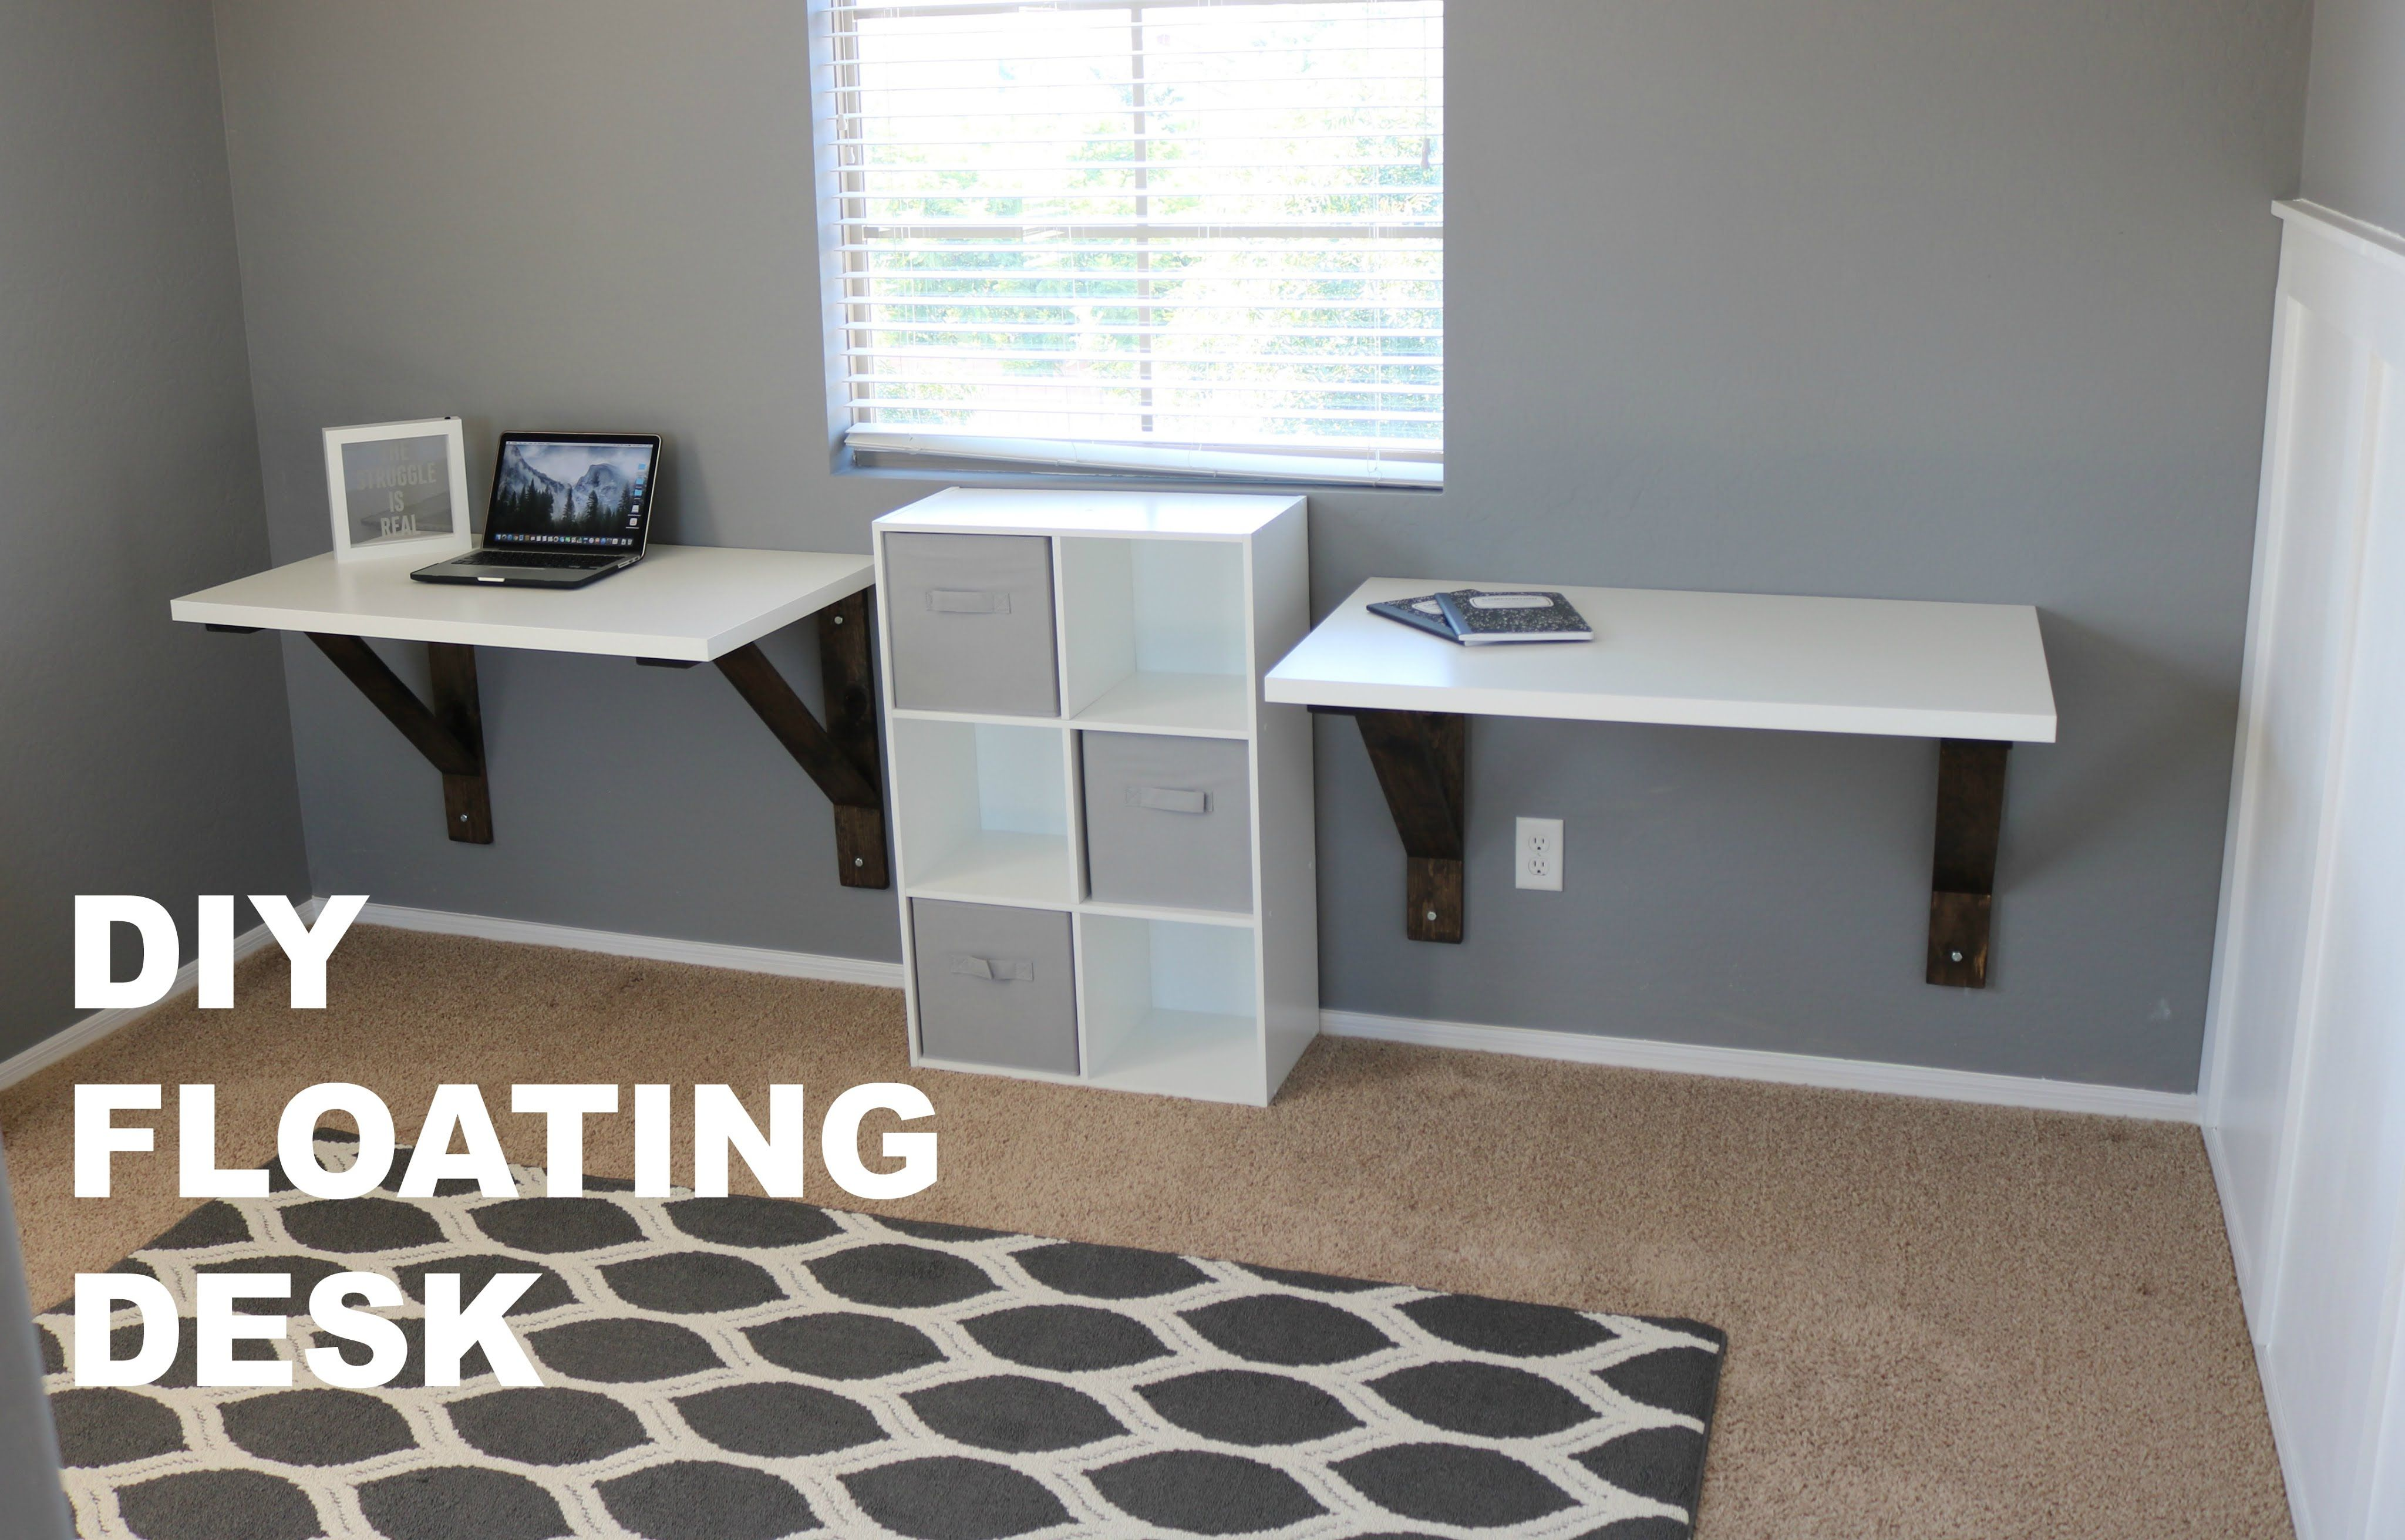 This Was My Build Of The Custom Floating Desks For My Home Office I Could Not Find Anything In Stores That I L Ikea Floating Desk Kids Rooms Diy Floating Desk